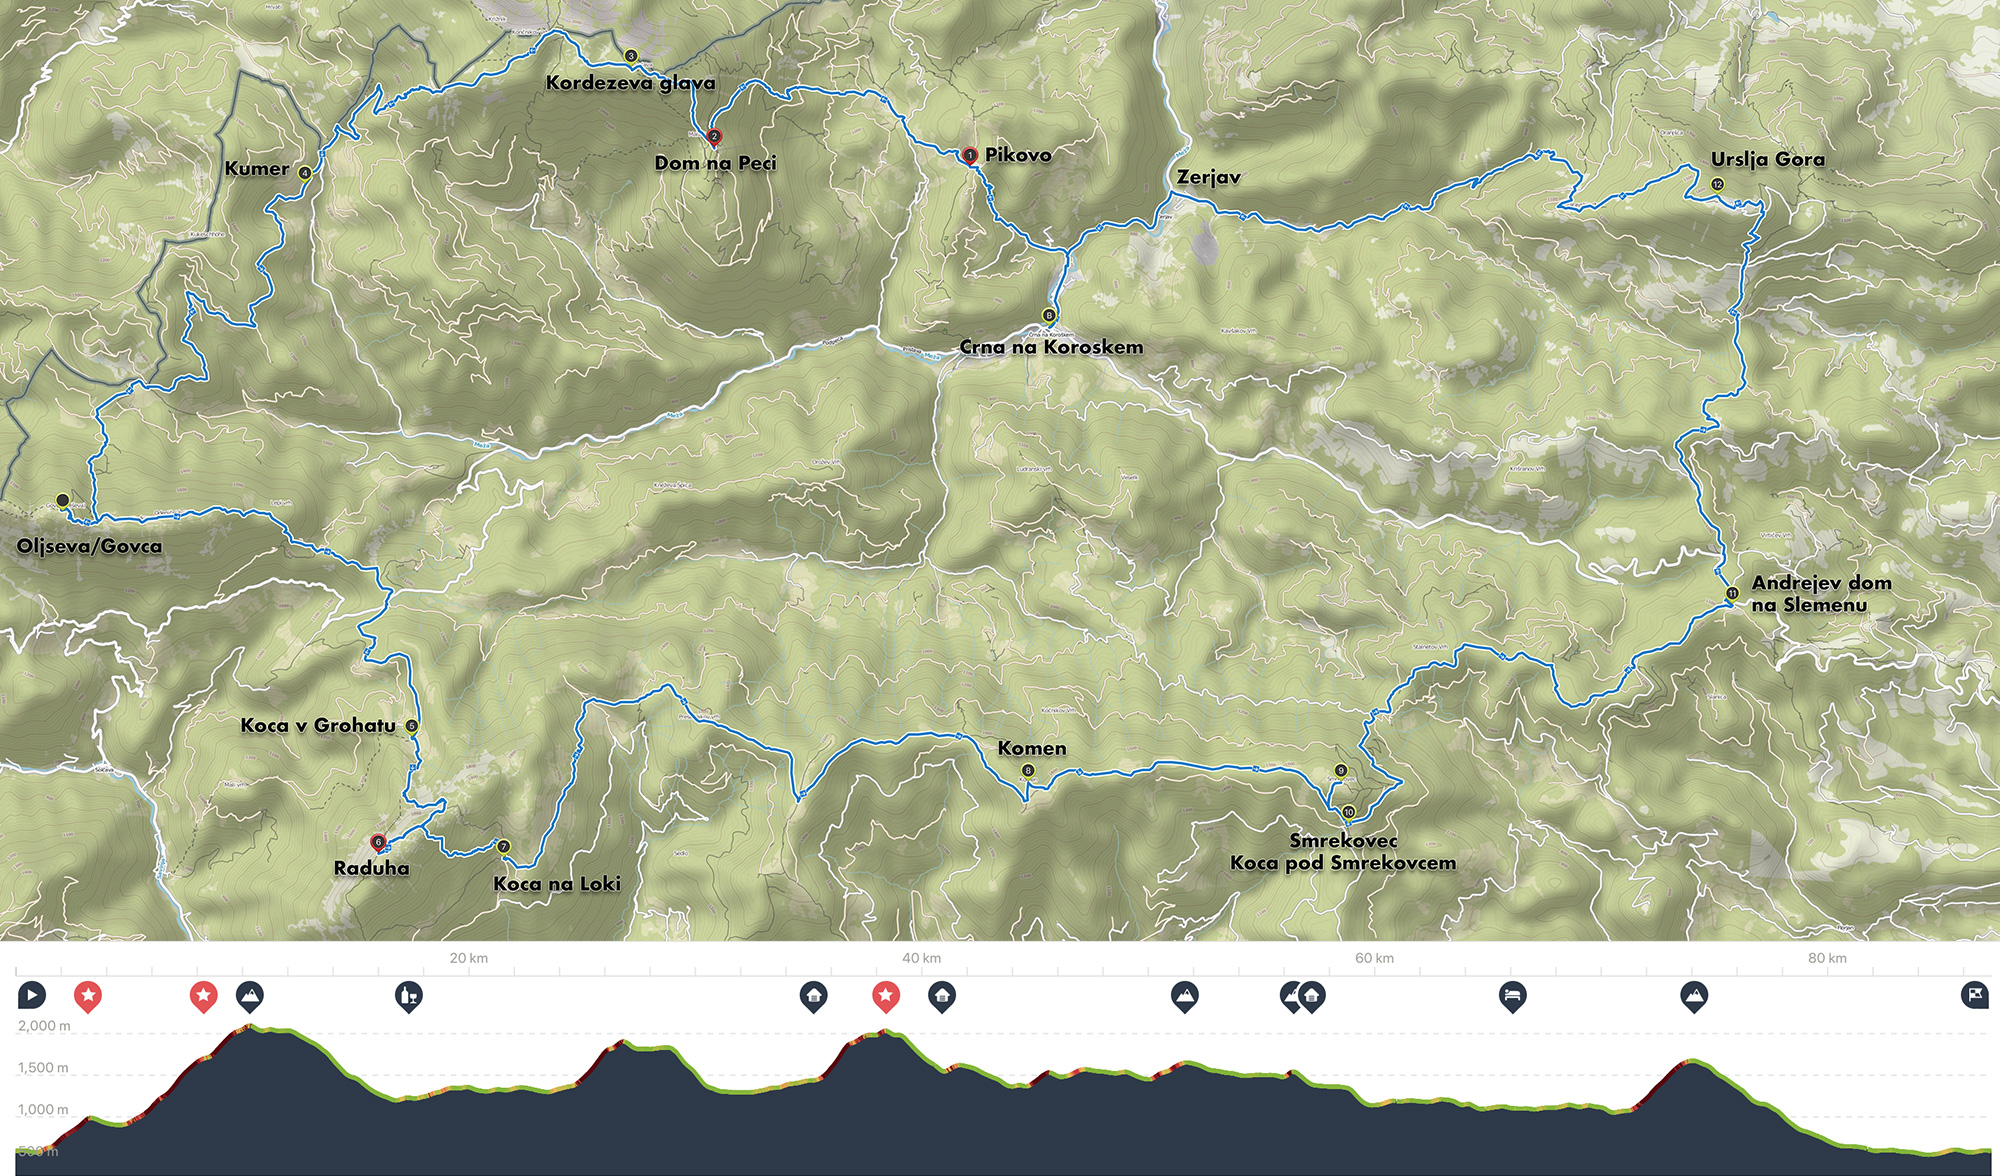 K24 Counter-clockwise route:  Elevation profile  from left to right shows Peca, Govca, Raduha, Komen, Smrekovec, Sleme, Urslja Gora